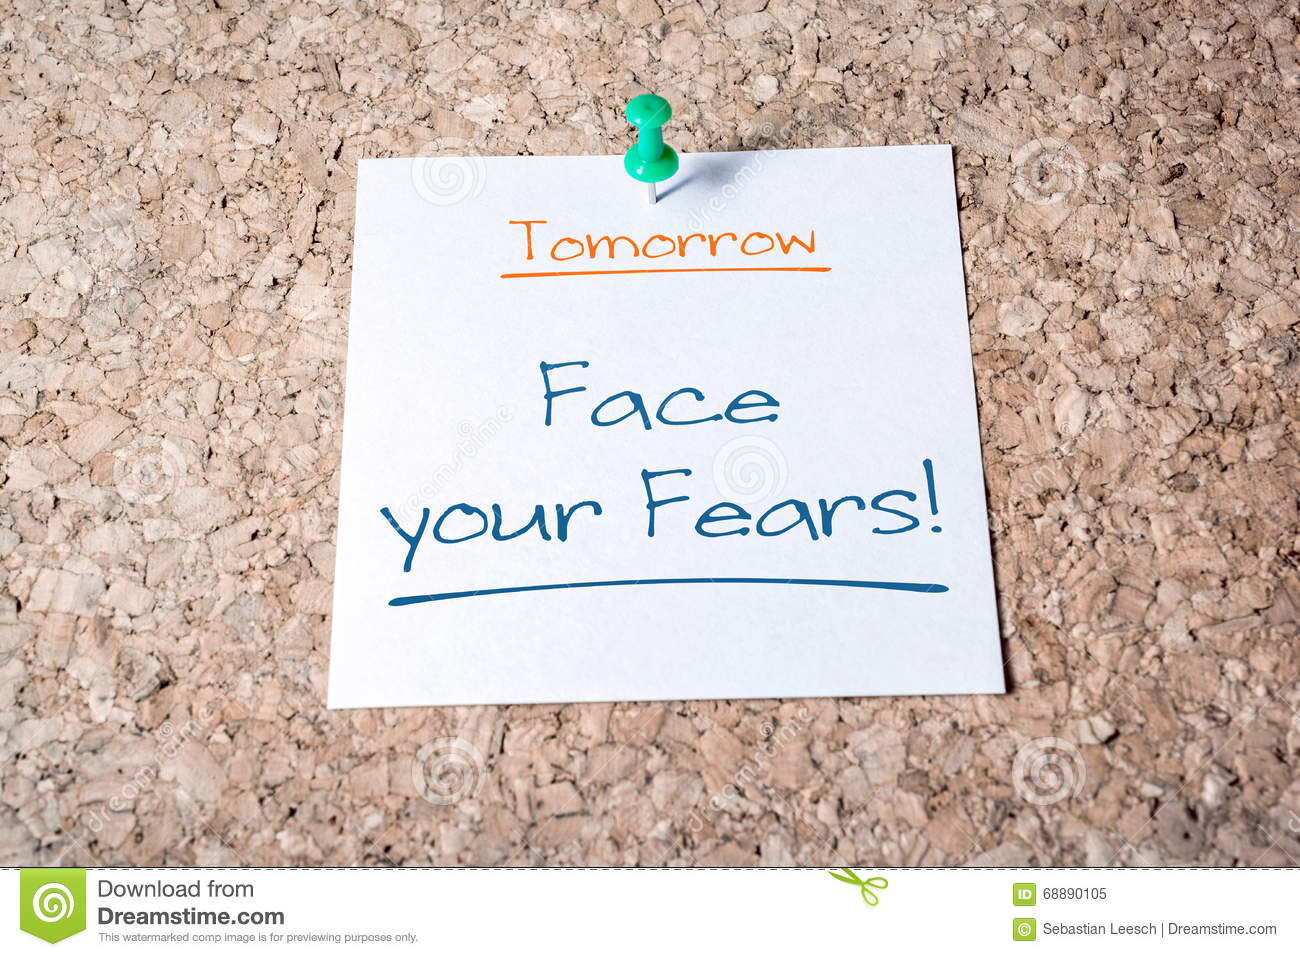 Face Your Fears Reminder For Tomorrow On Paper Pinned On Cork Board